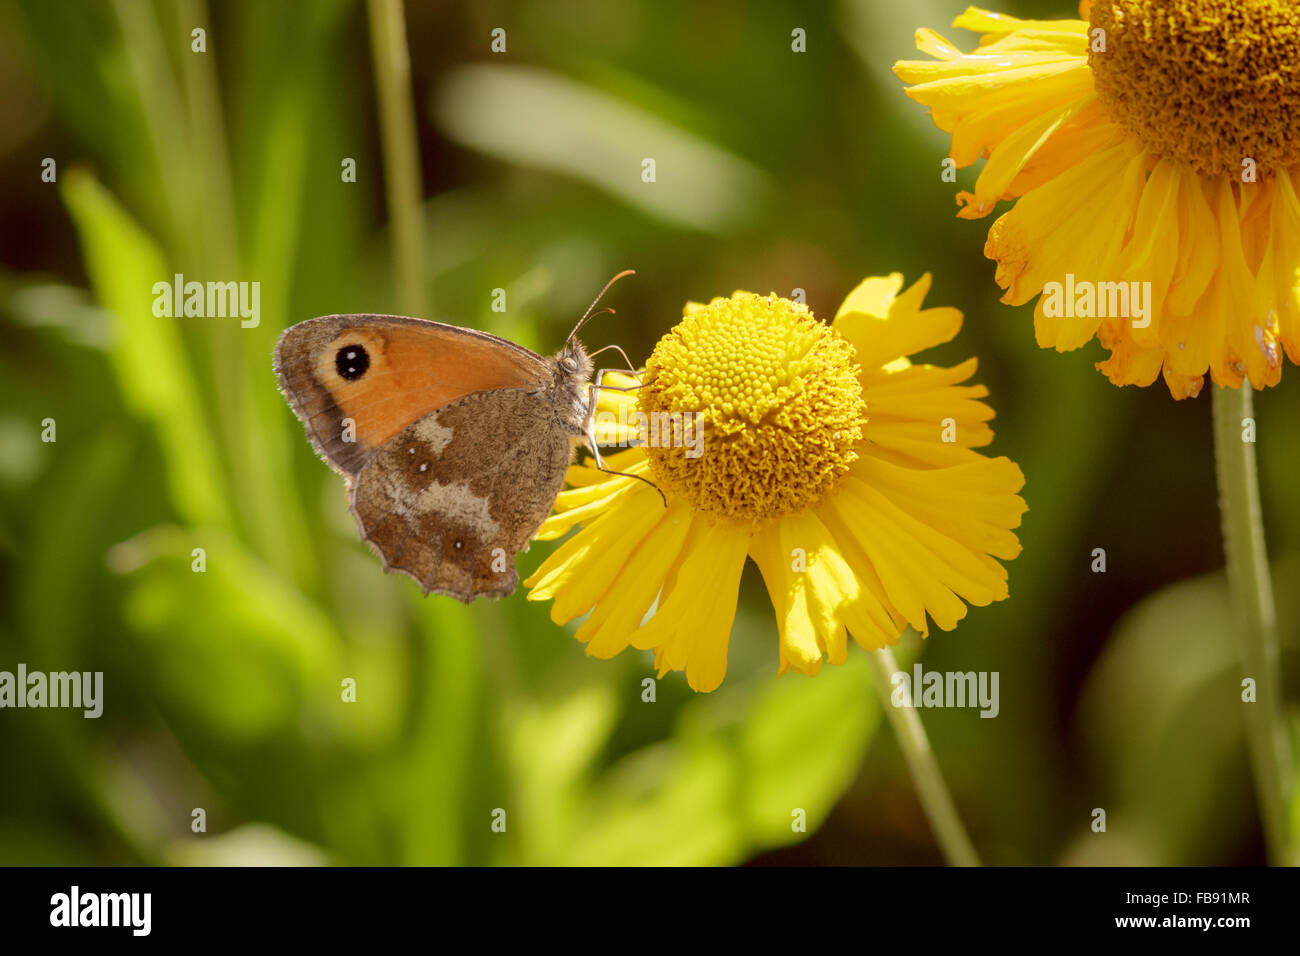 Gatekeeper butterfly (Pyronia tithonus) perched on a daisy. - Stock Image